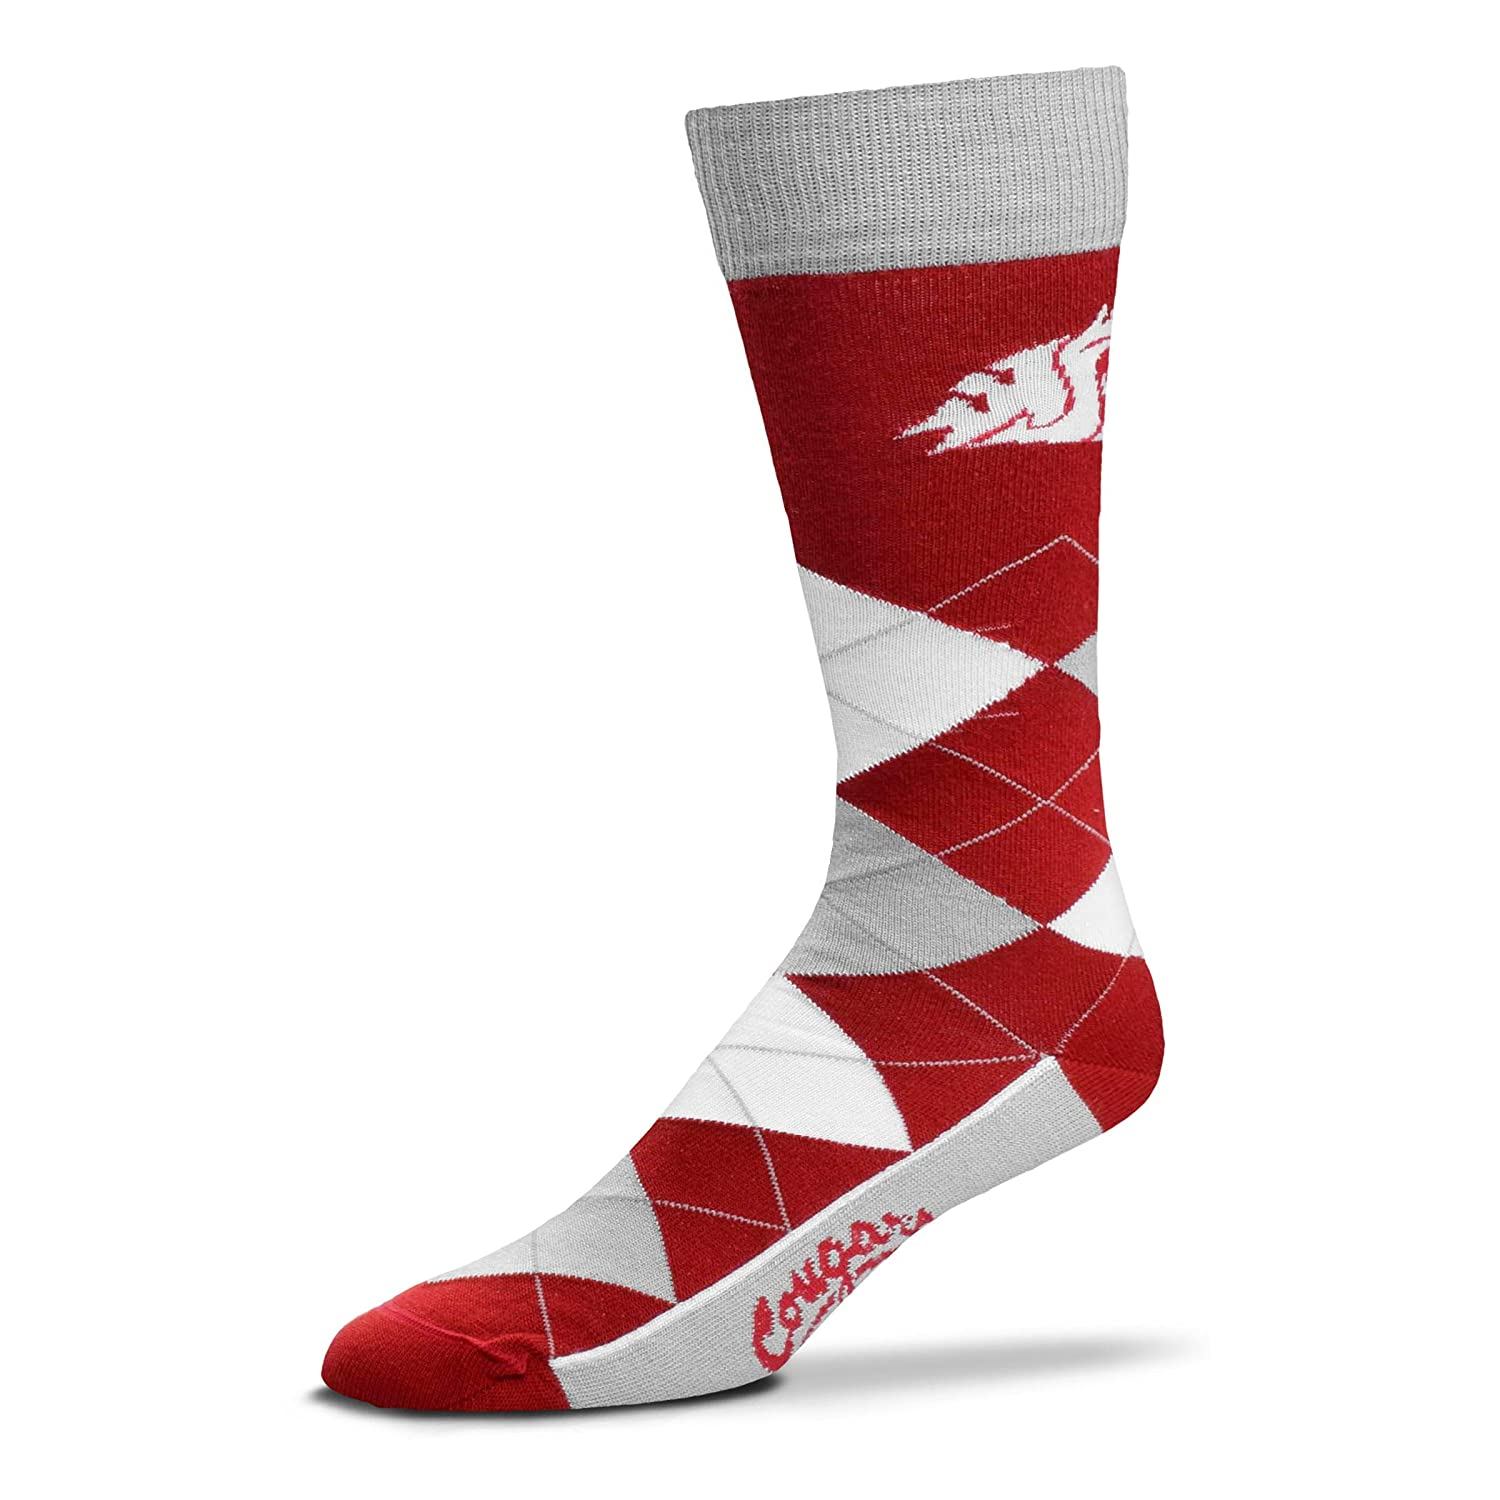 f7cdb44da Amazon.com   For Bare Feet NCAA Argyle Lineup Socks-Alabama Crimson  Tide-One Size Fits Most   Clothing